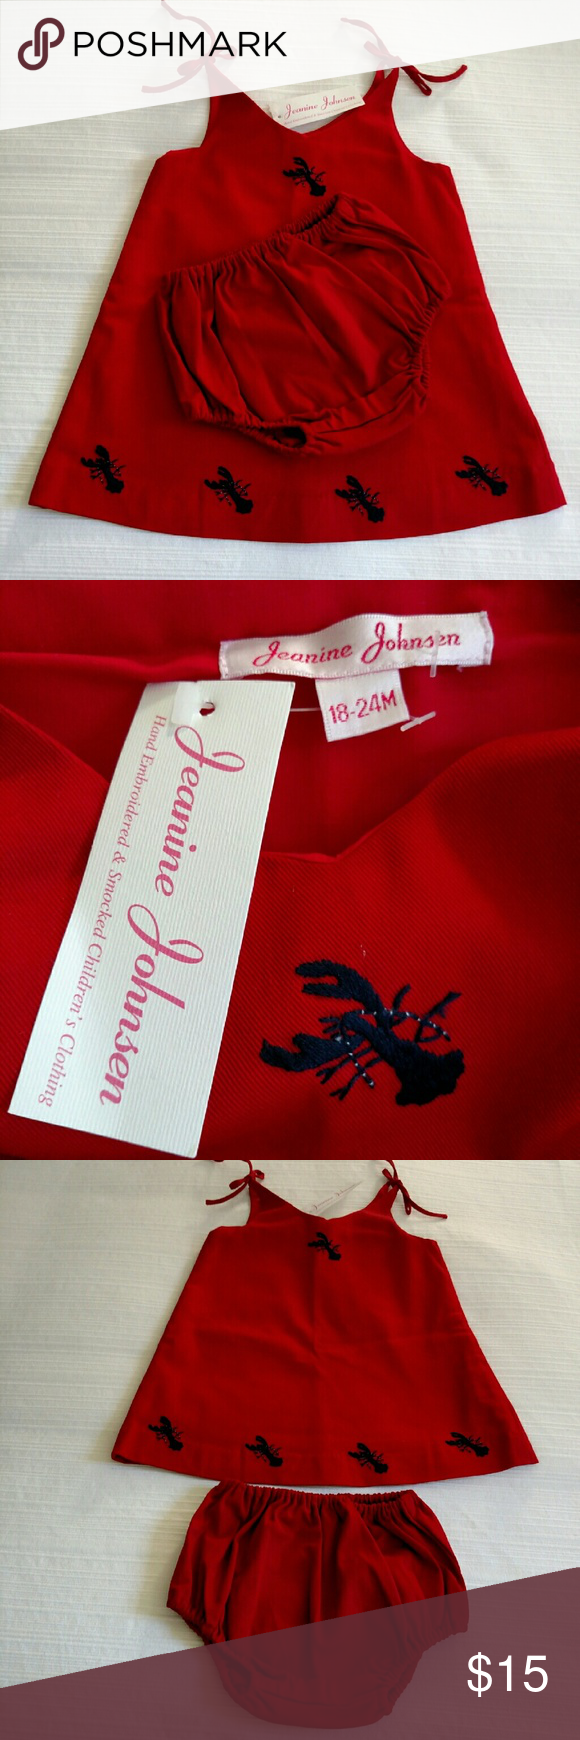 Jeanine Johnsen 2 pc dress NWT Red Boutique designer dress & diaper cover short. Hand embroidered lobsters encircle the hem of the dress. Adorable! Smoke free home. Jeanine Johnsen Dresses